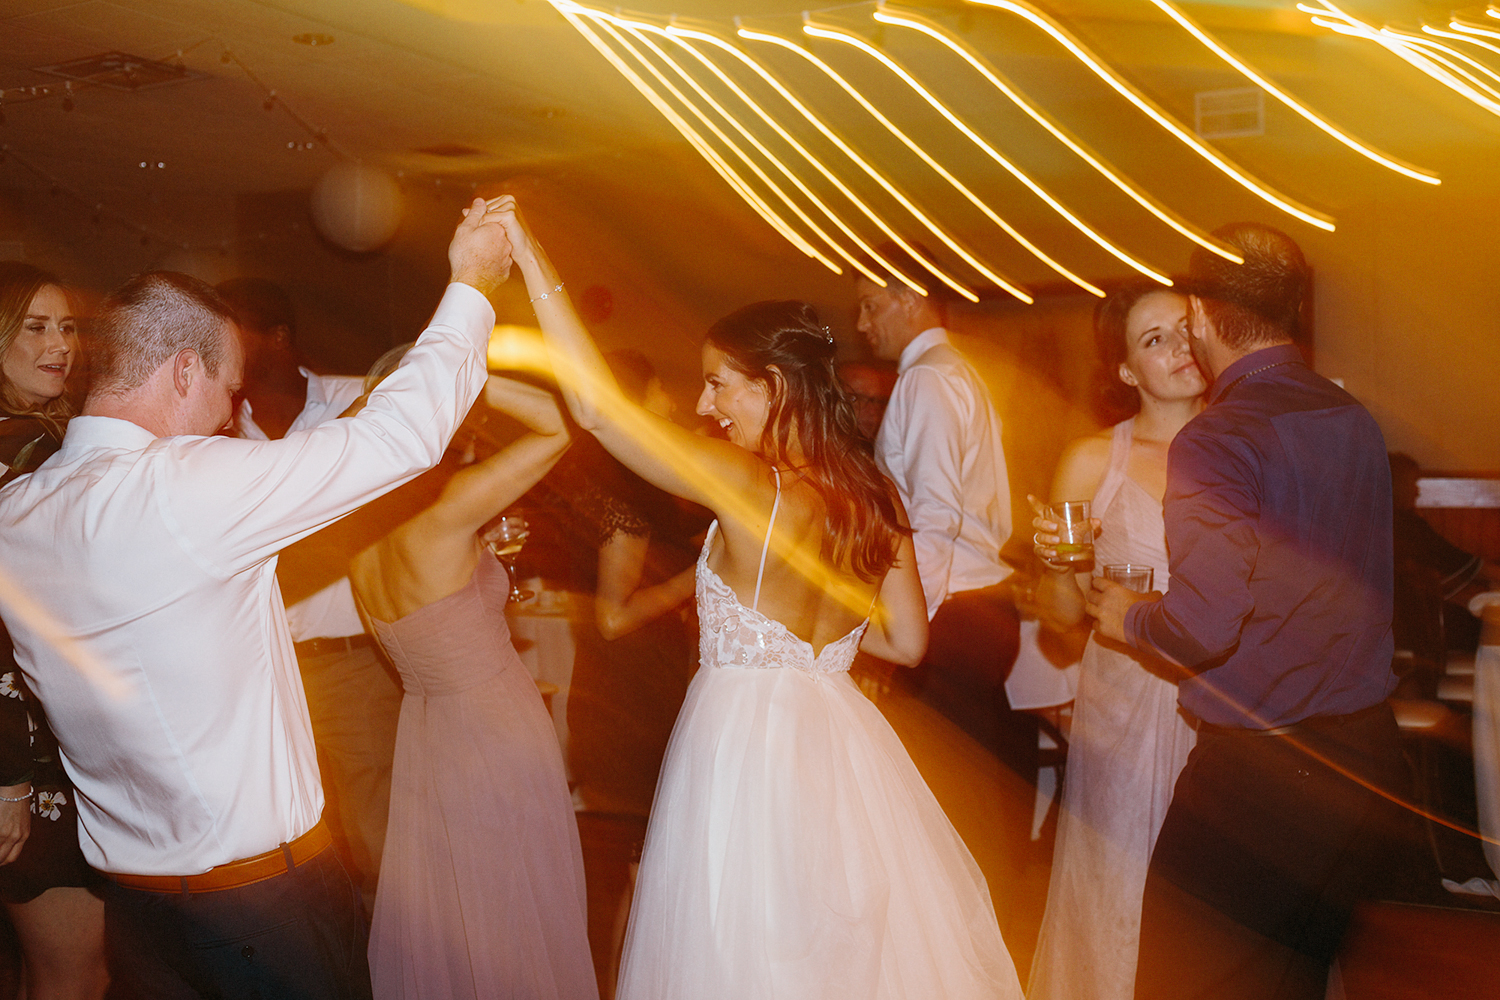 candid-bride-and-groom-dancing-at-reception-At-Eganridge-Resort-Venue-Muskoka-Ontario-Wedding-Photography-by-Ryanne-Hollies-Photography-Toronto-Documentary-Wedding-Photographer.jpg